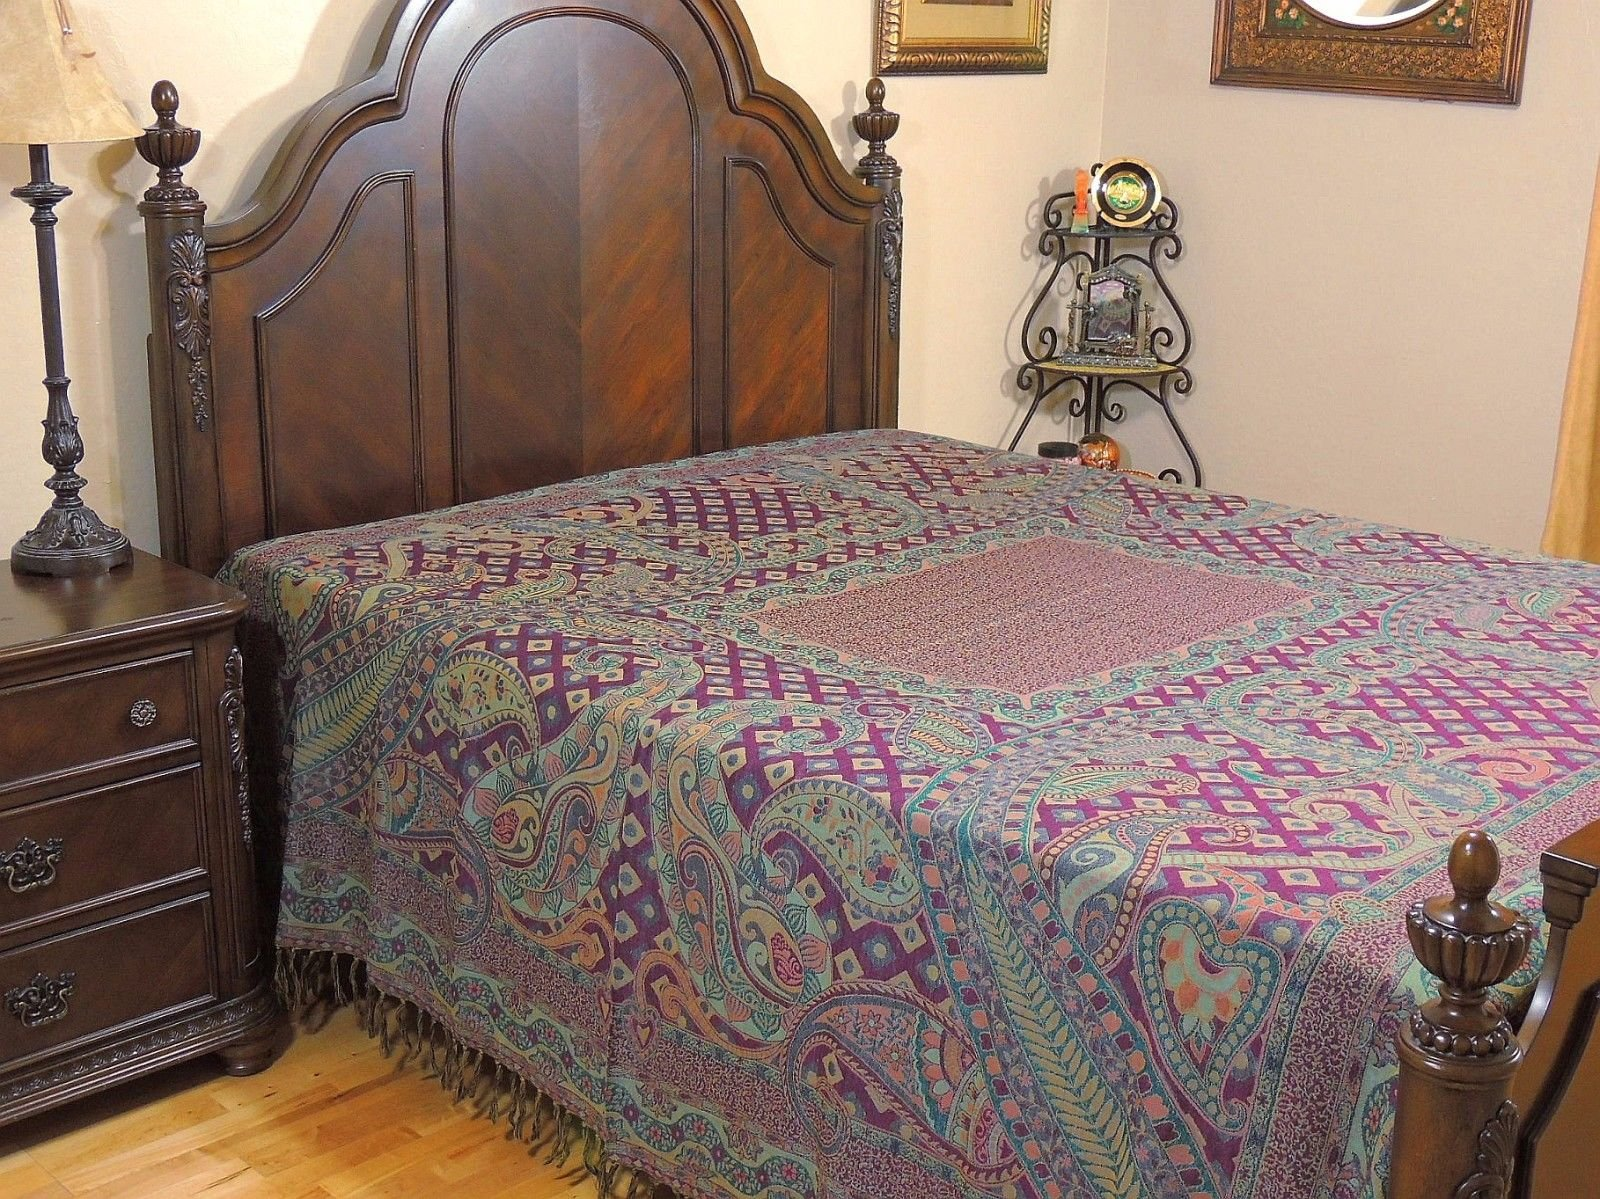 NovaHaat Woven Jamavar 100% Wool Rang Mahal (The Palace of colors) Purple, Teal and Taupe REVERSIBLE Bedspread with Paisley & Floral motifs from India: Size - Queen 90'' x 108'' or Use as Huge Throw